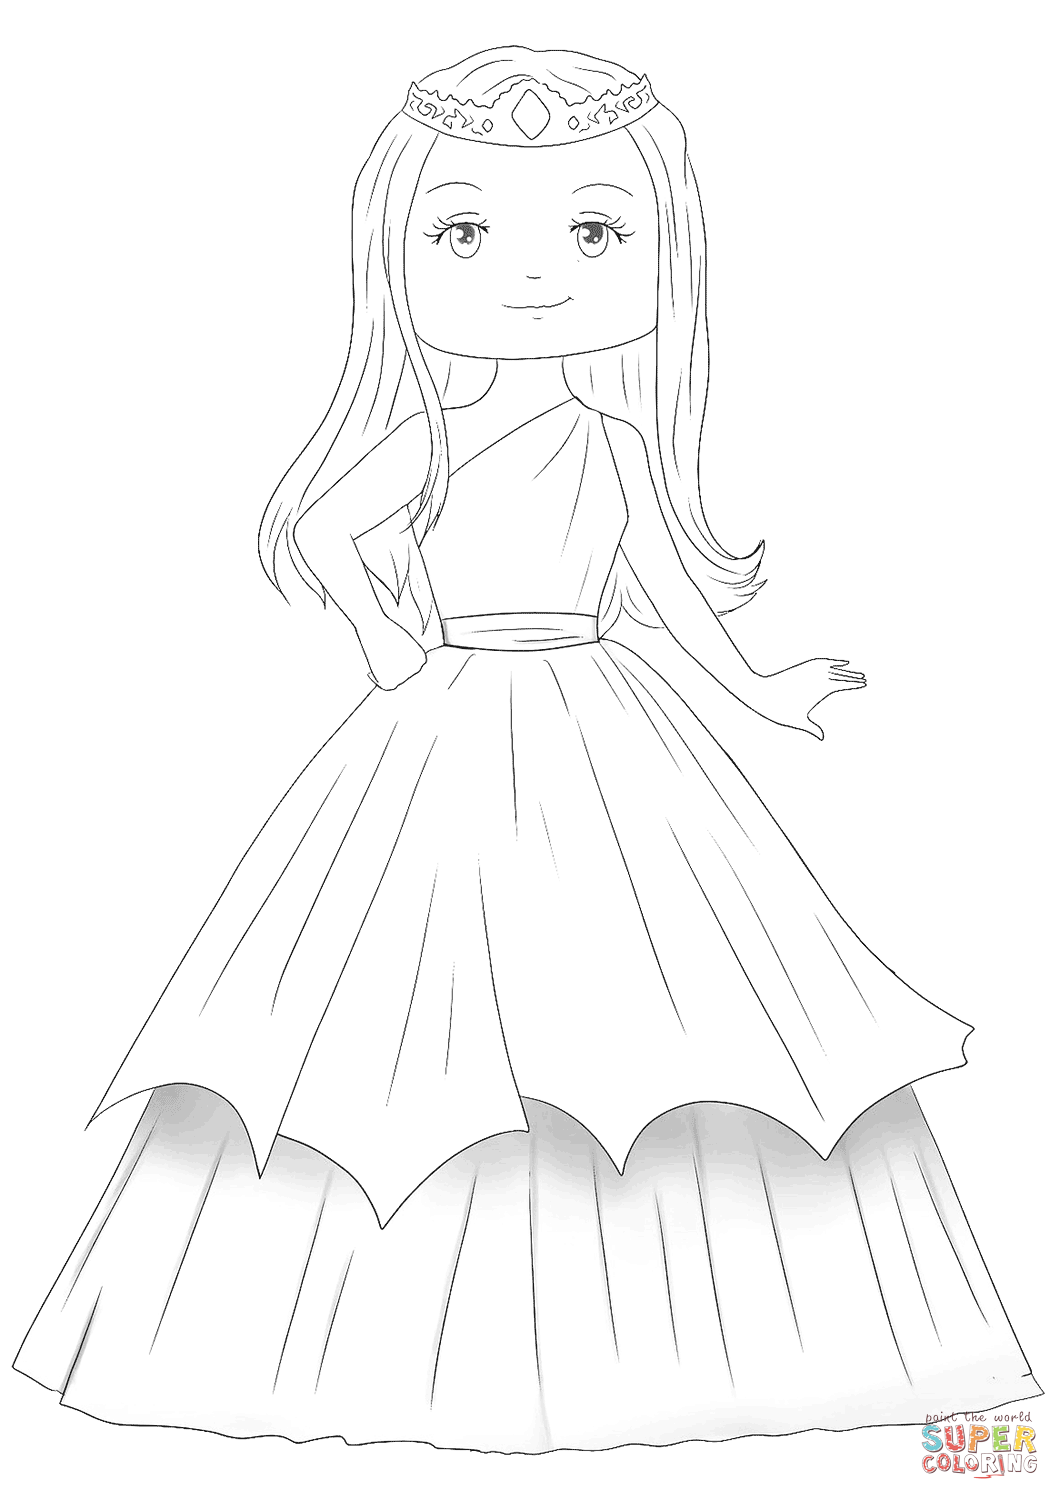 cute kawaii princess coloring pages coloring pages cute princess super duper coloring kawaii princess cute coloring pages